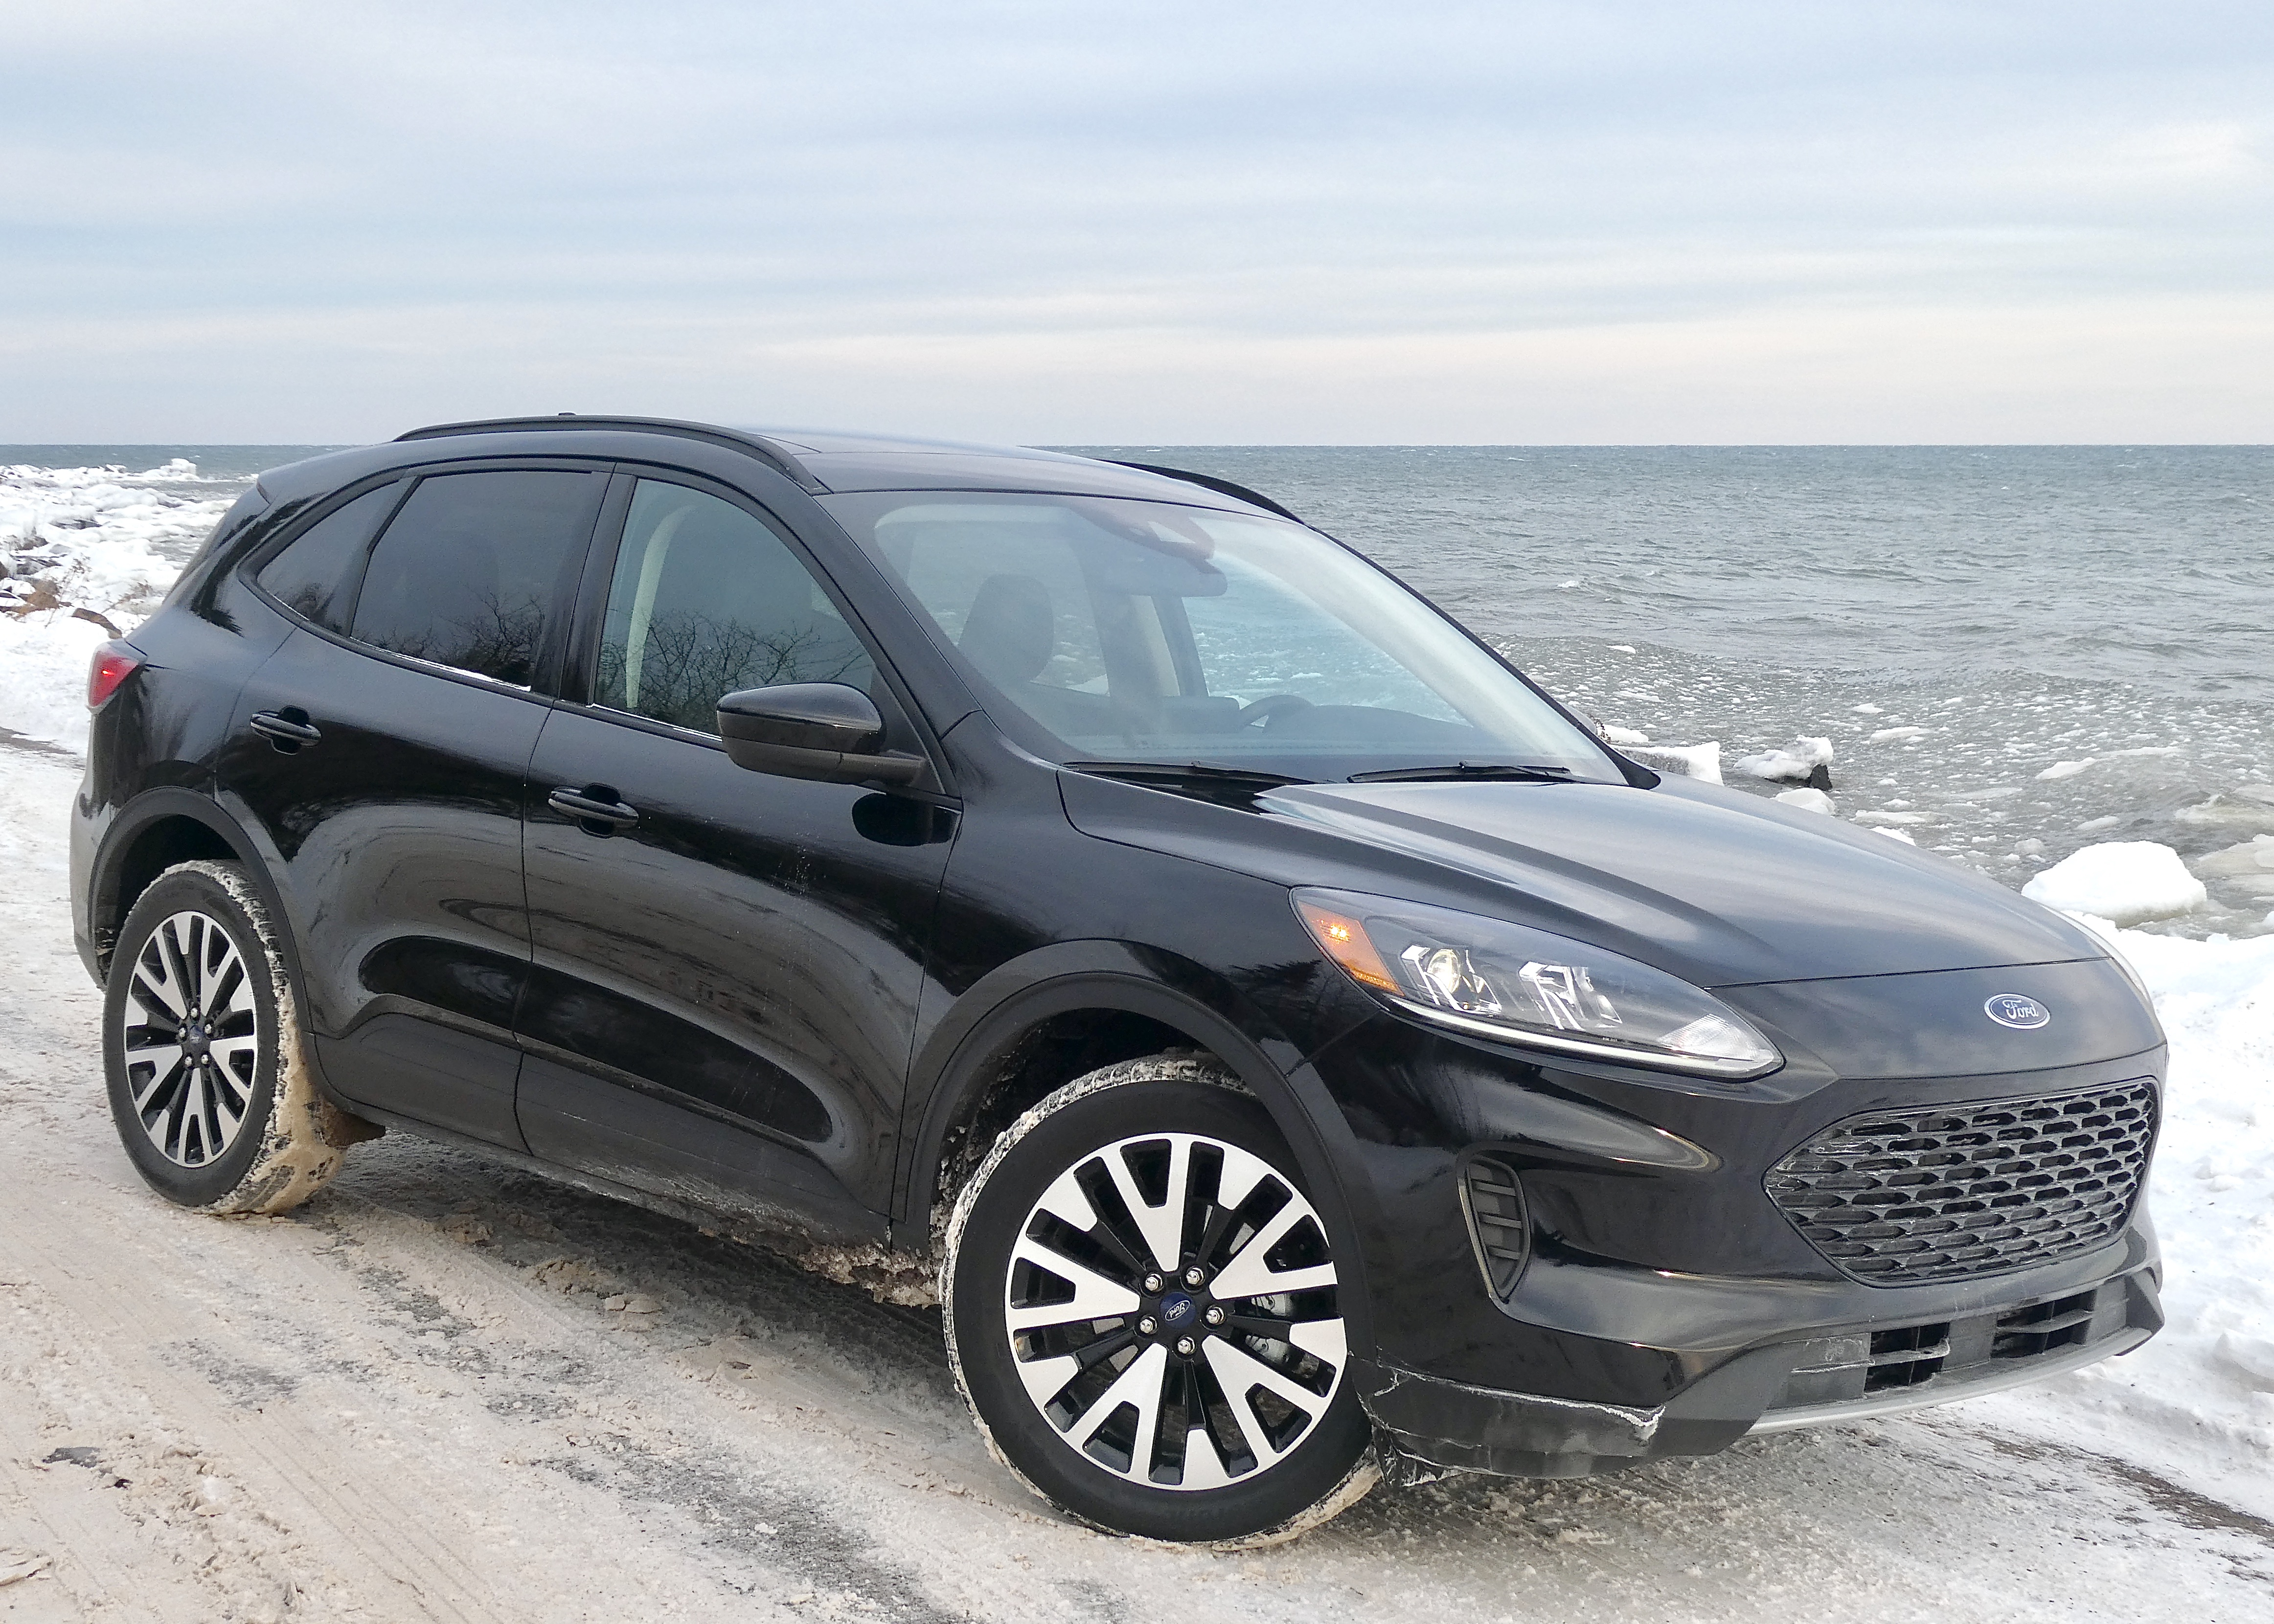 Snow, cold, and the climate of Lake Superior's North Shore can make you want to escape, and the new Escape is the right vehicle.